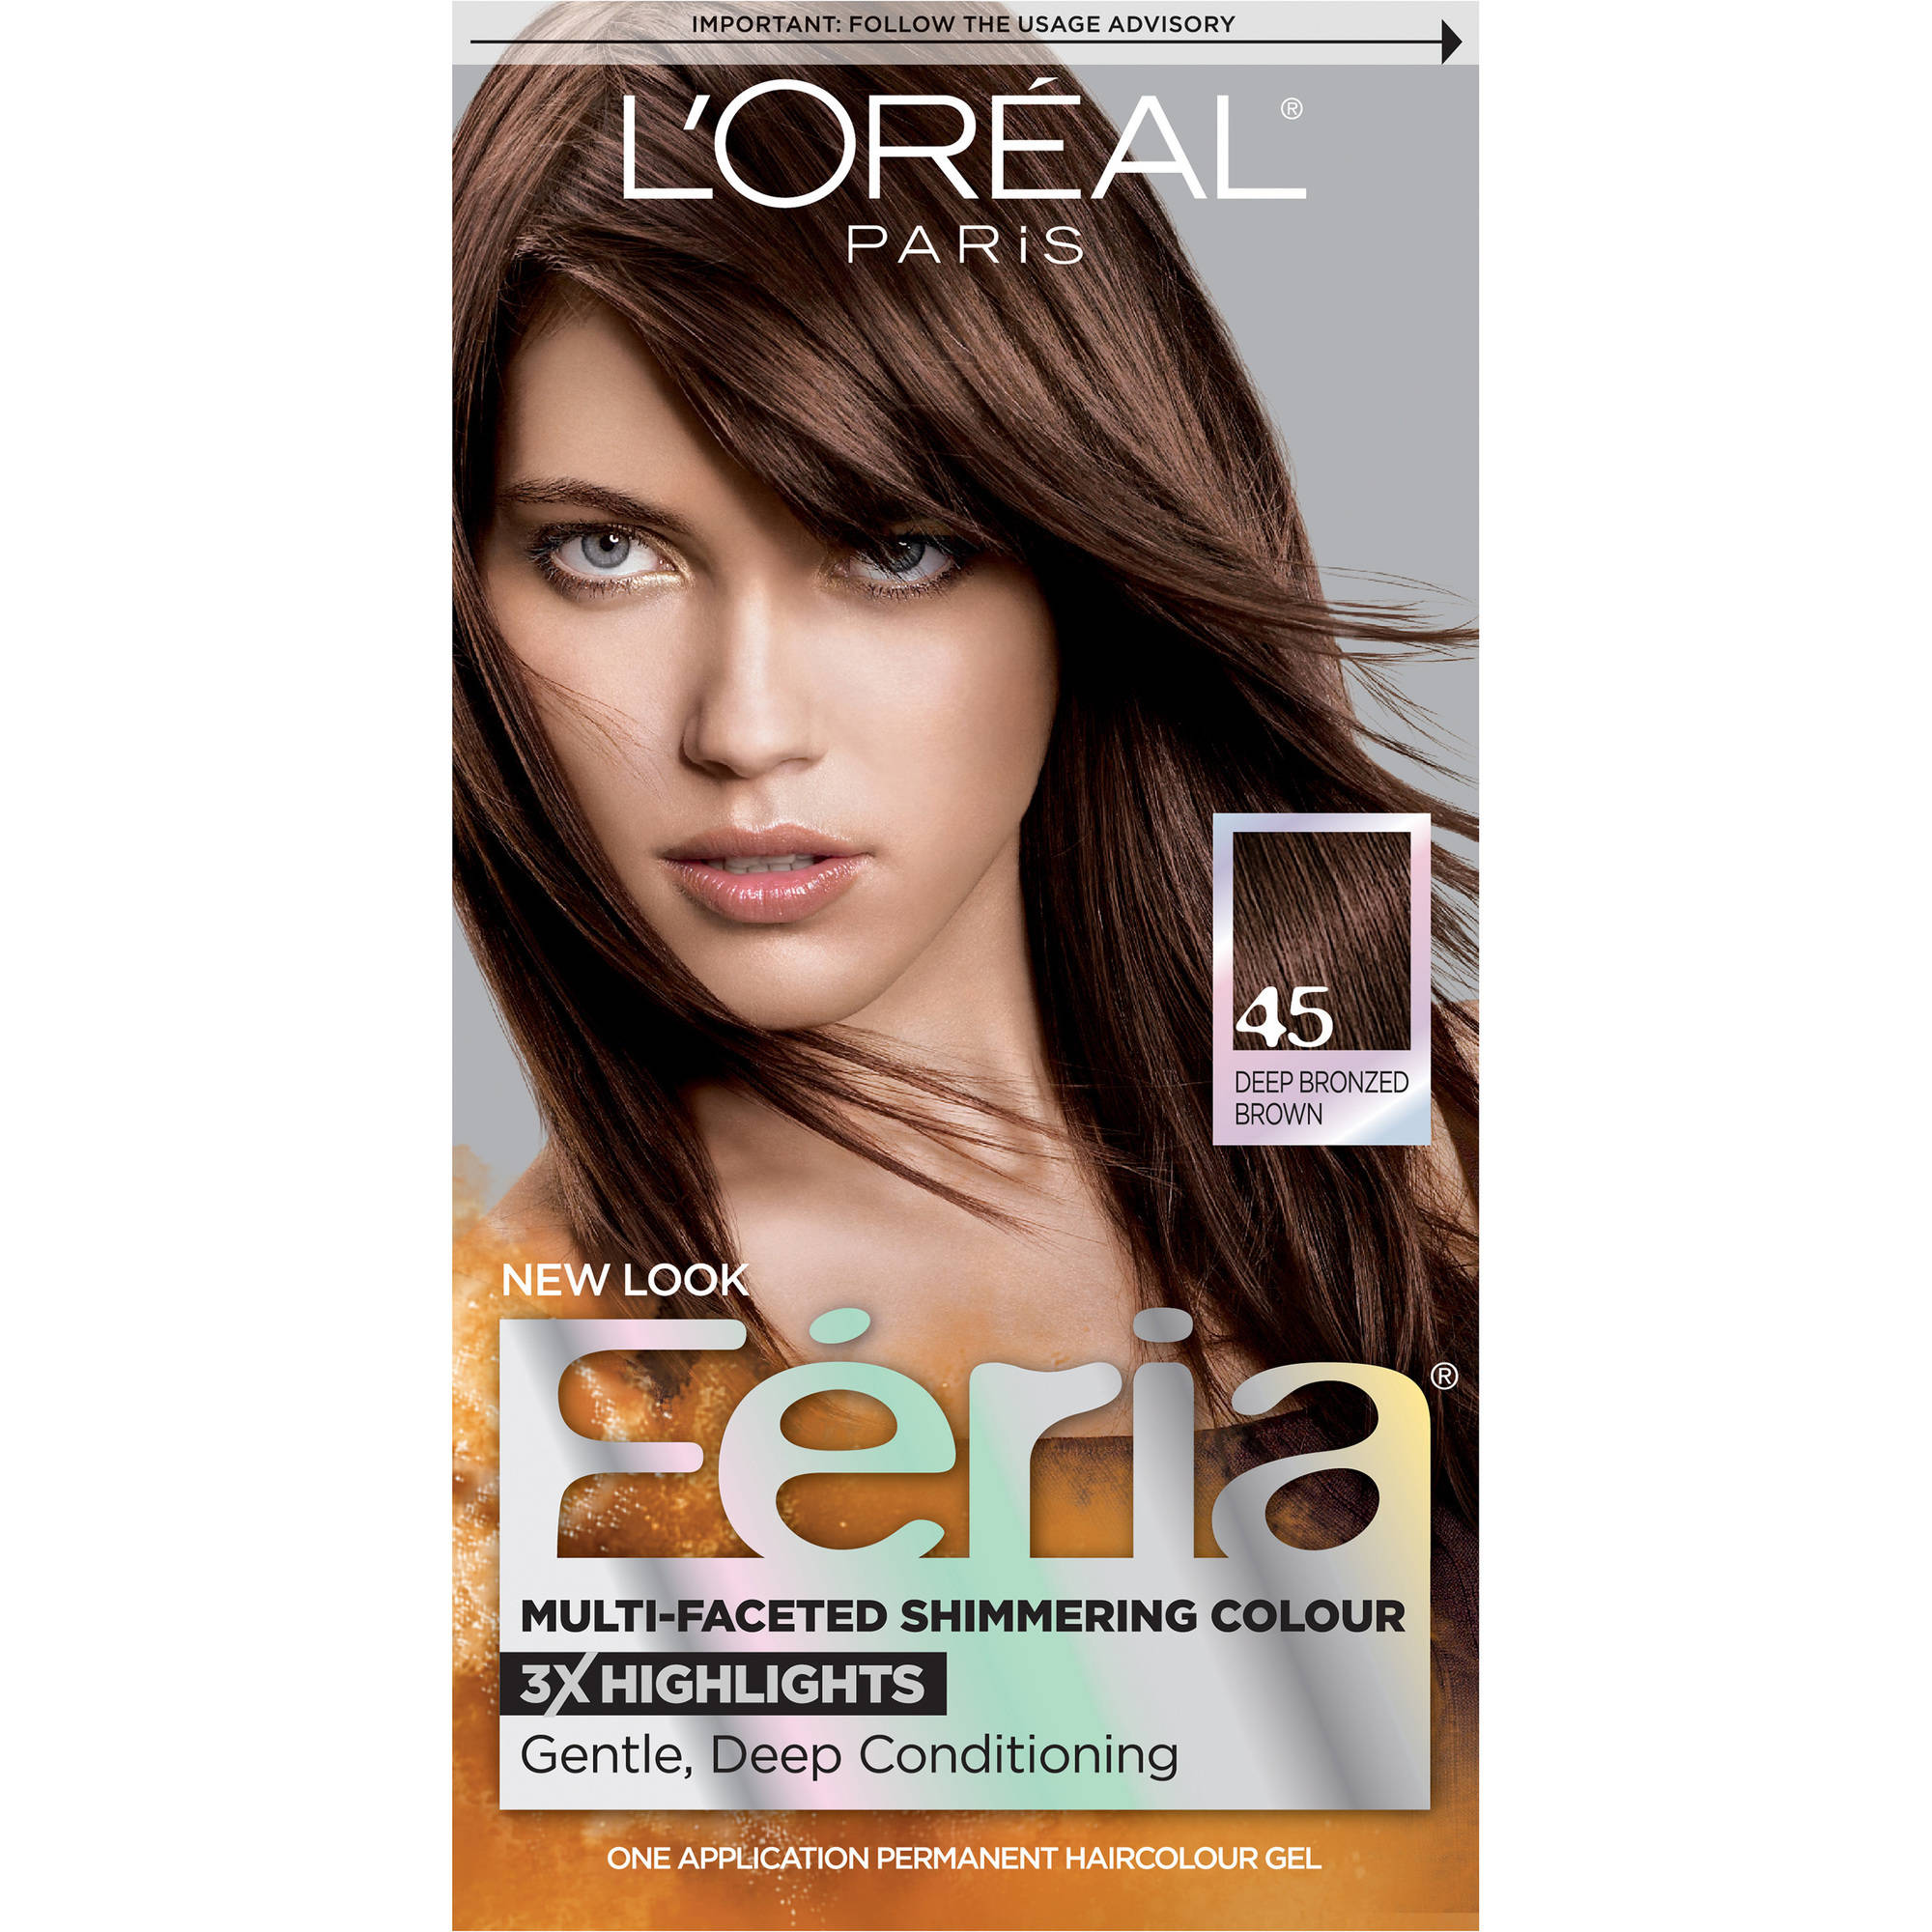 Lu0026#39;Oreal Paris Feria Multi-Faceted Shimmering Color - Walmart.com